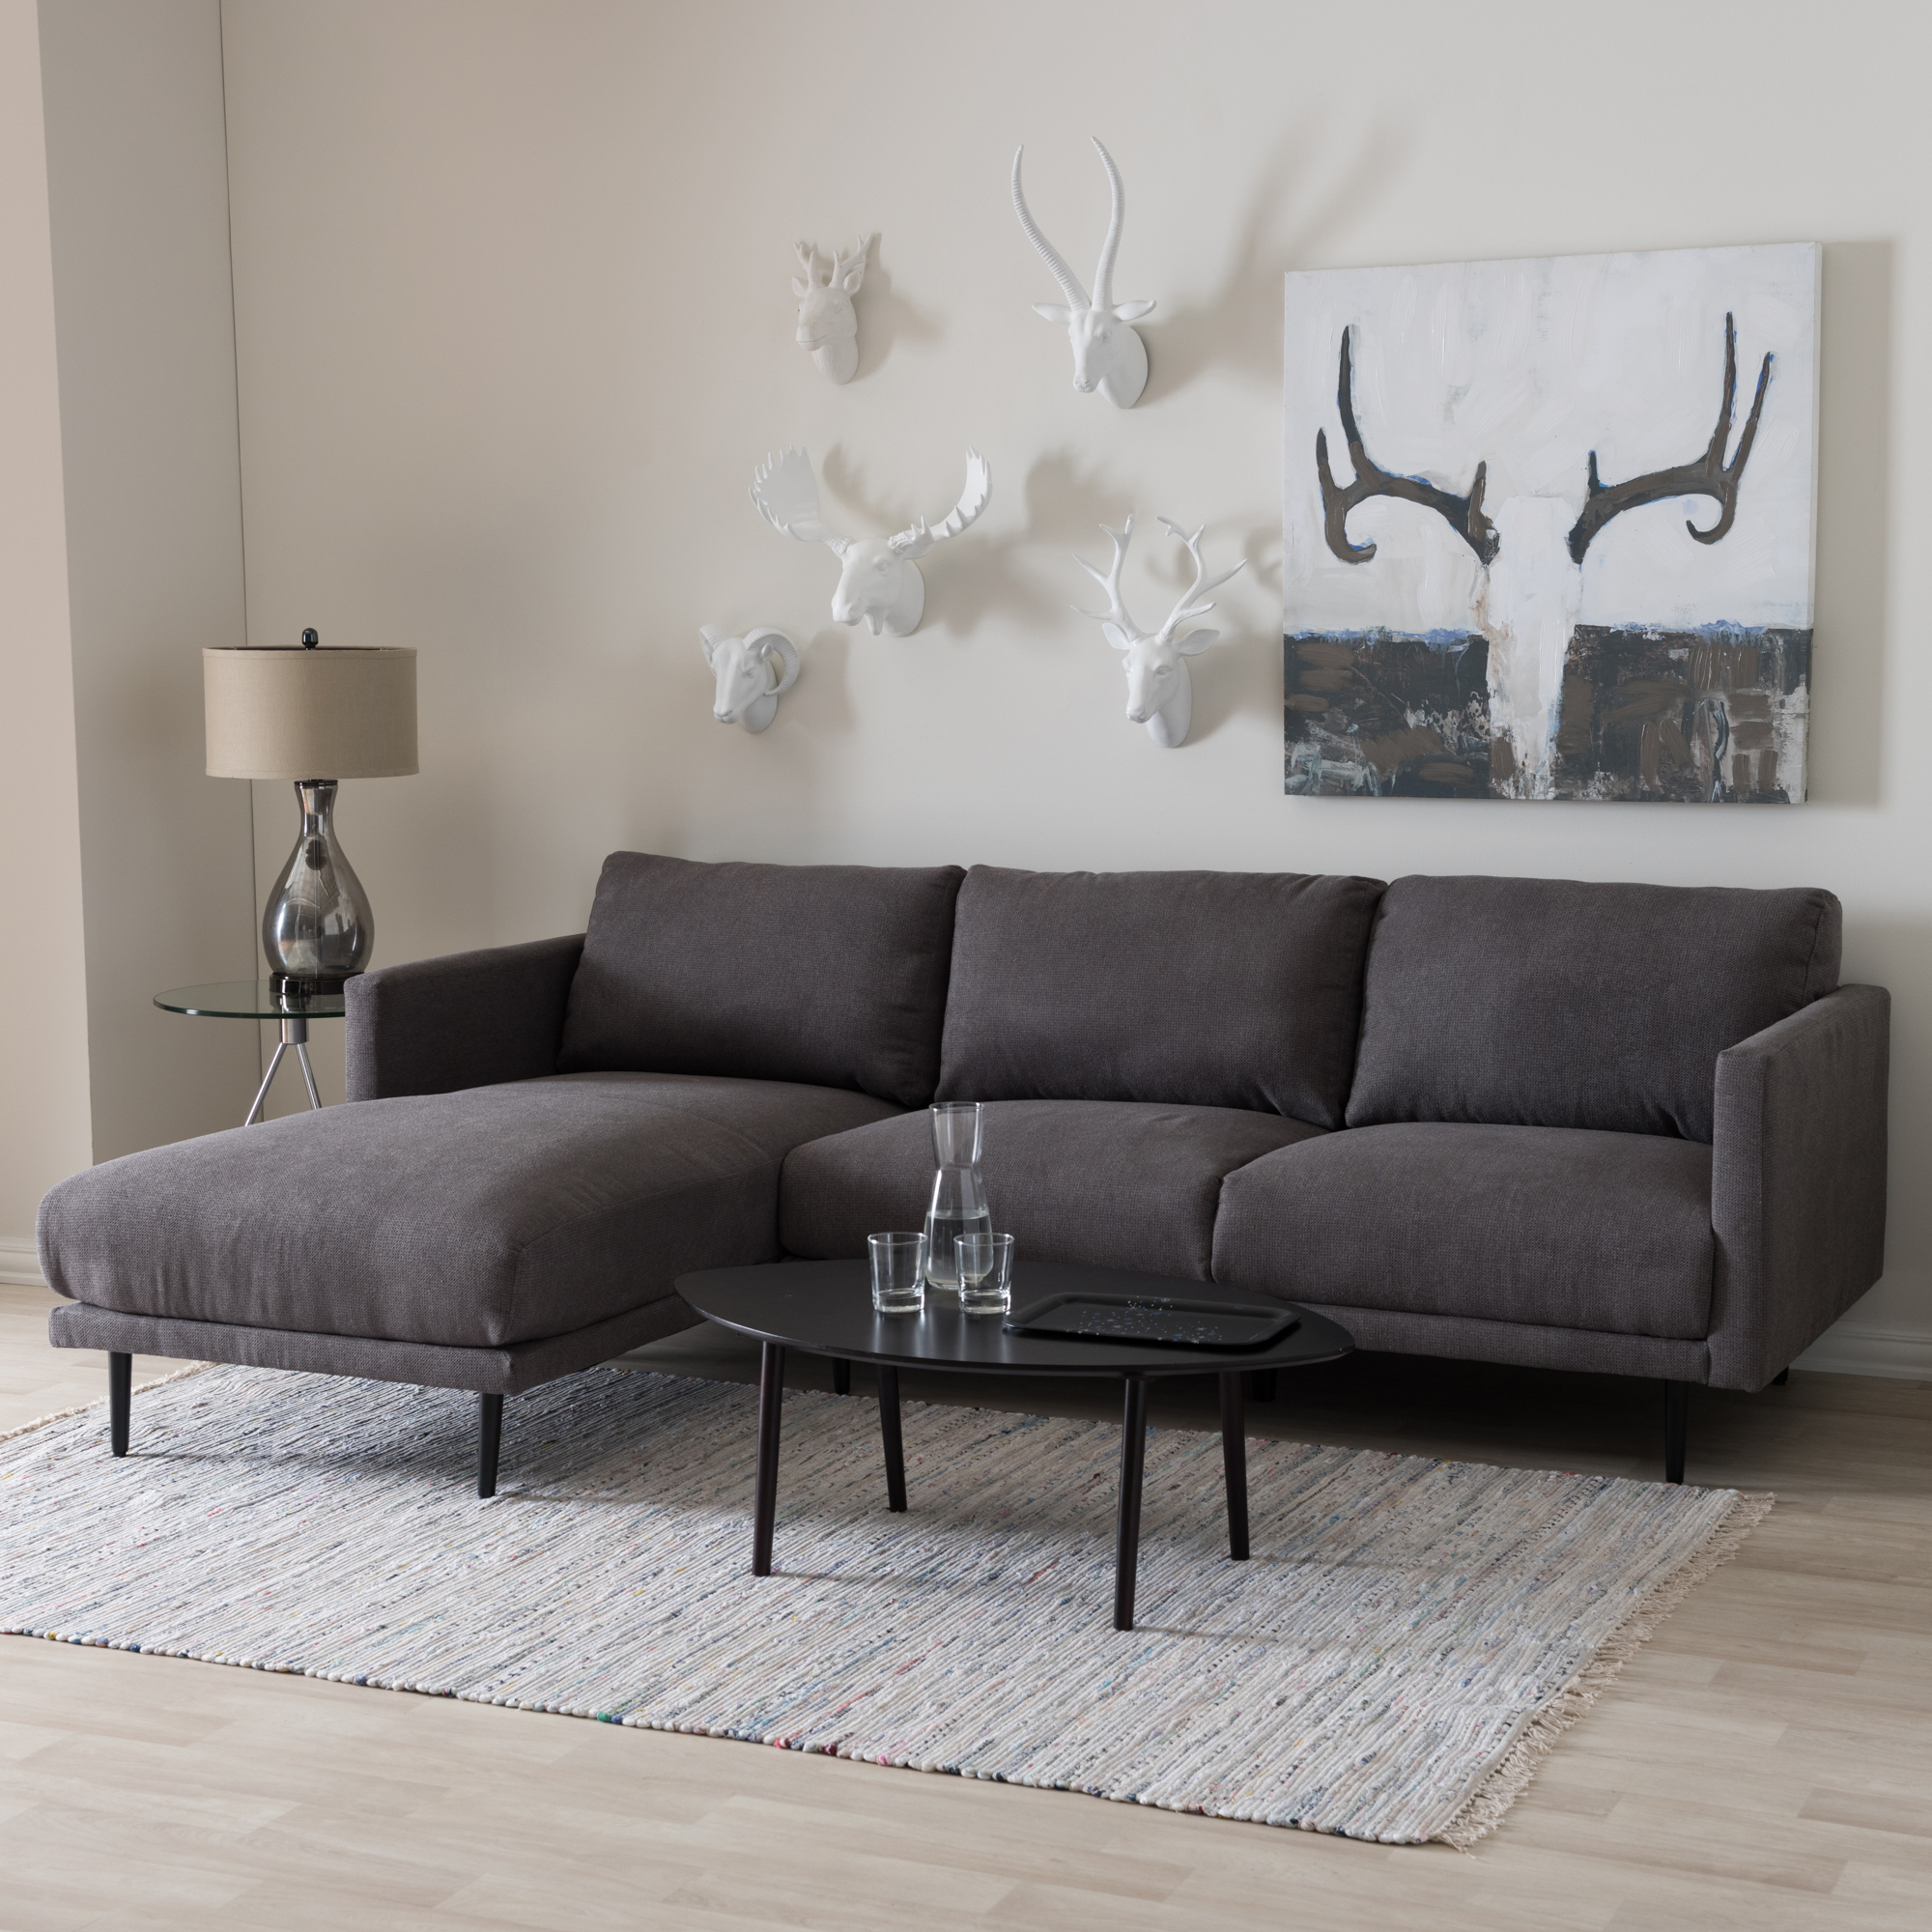 ... Baxton Studio Riley Retro Mid Century Modern Grey Fabric Upholstered  Left Facing Chaise Sectional Sofa ...